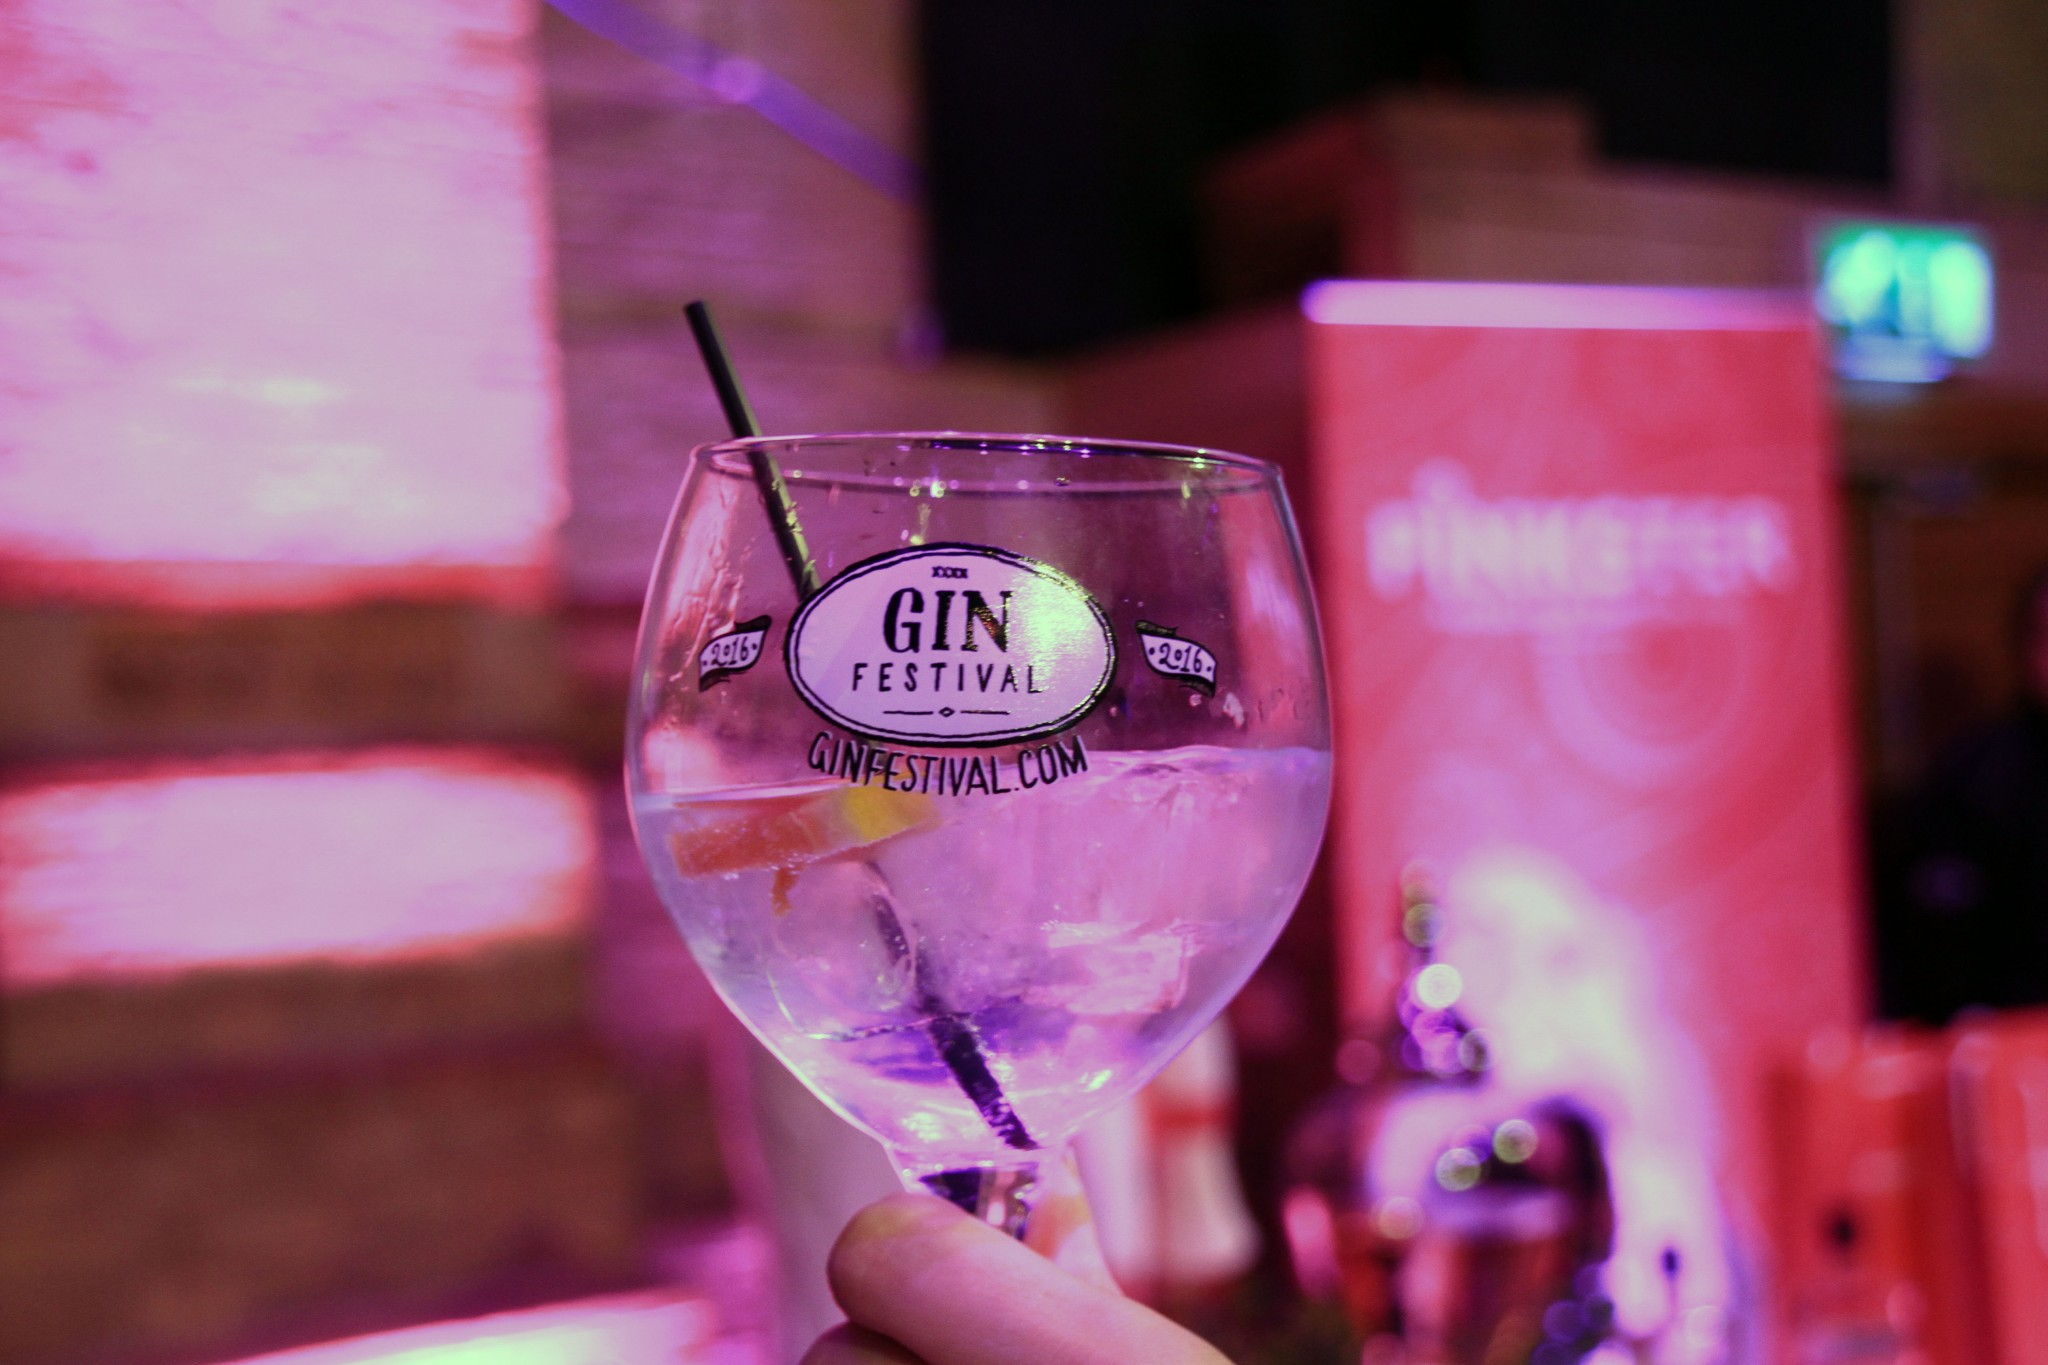 Gin Festival Glass 2016